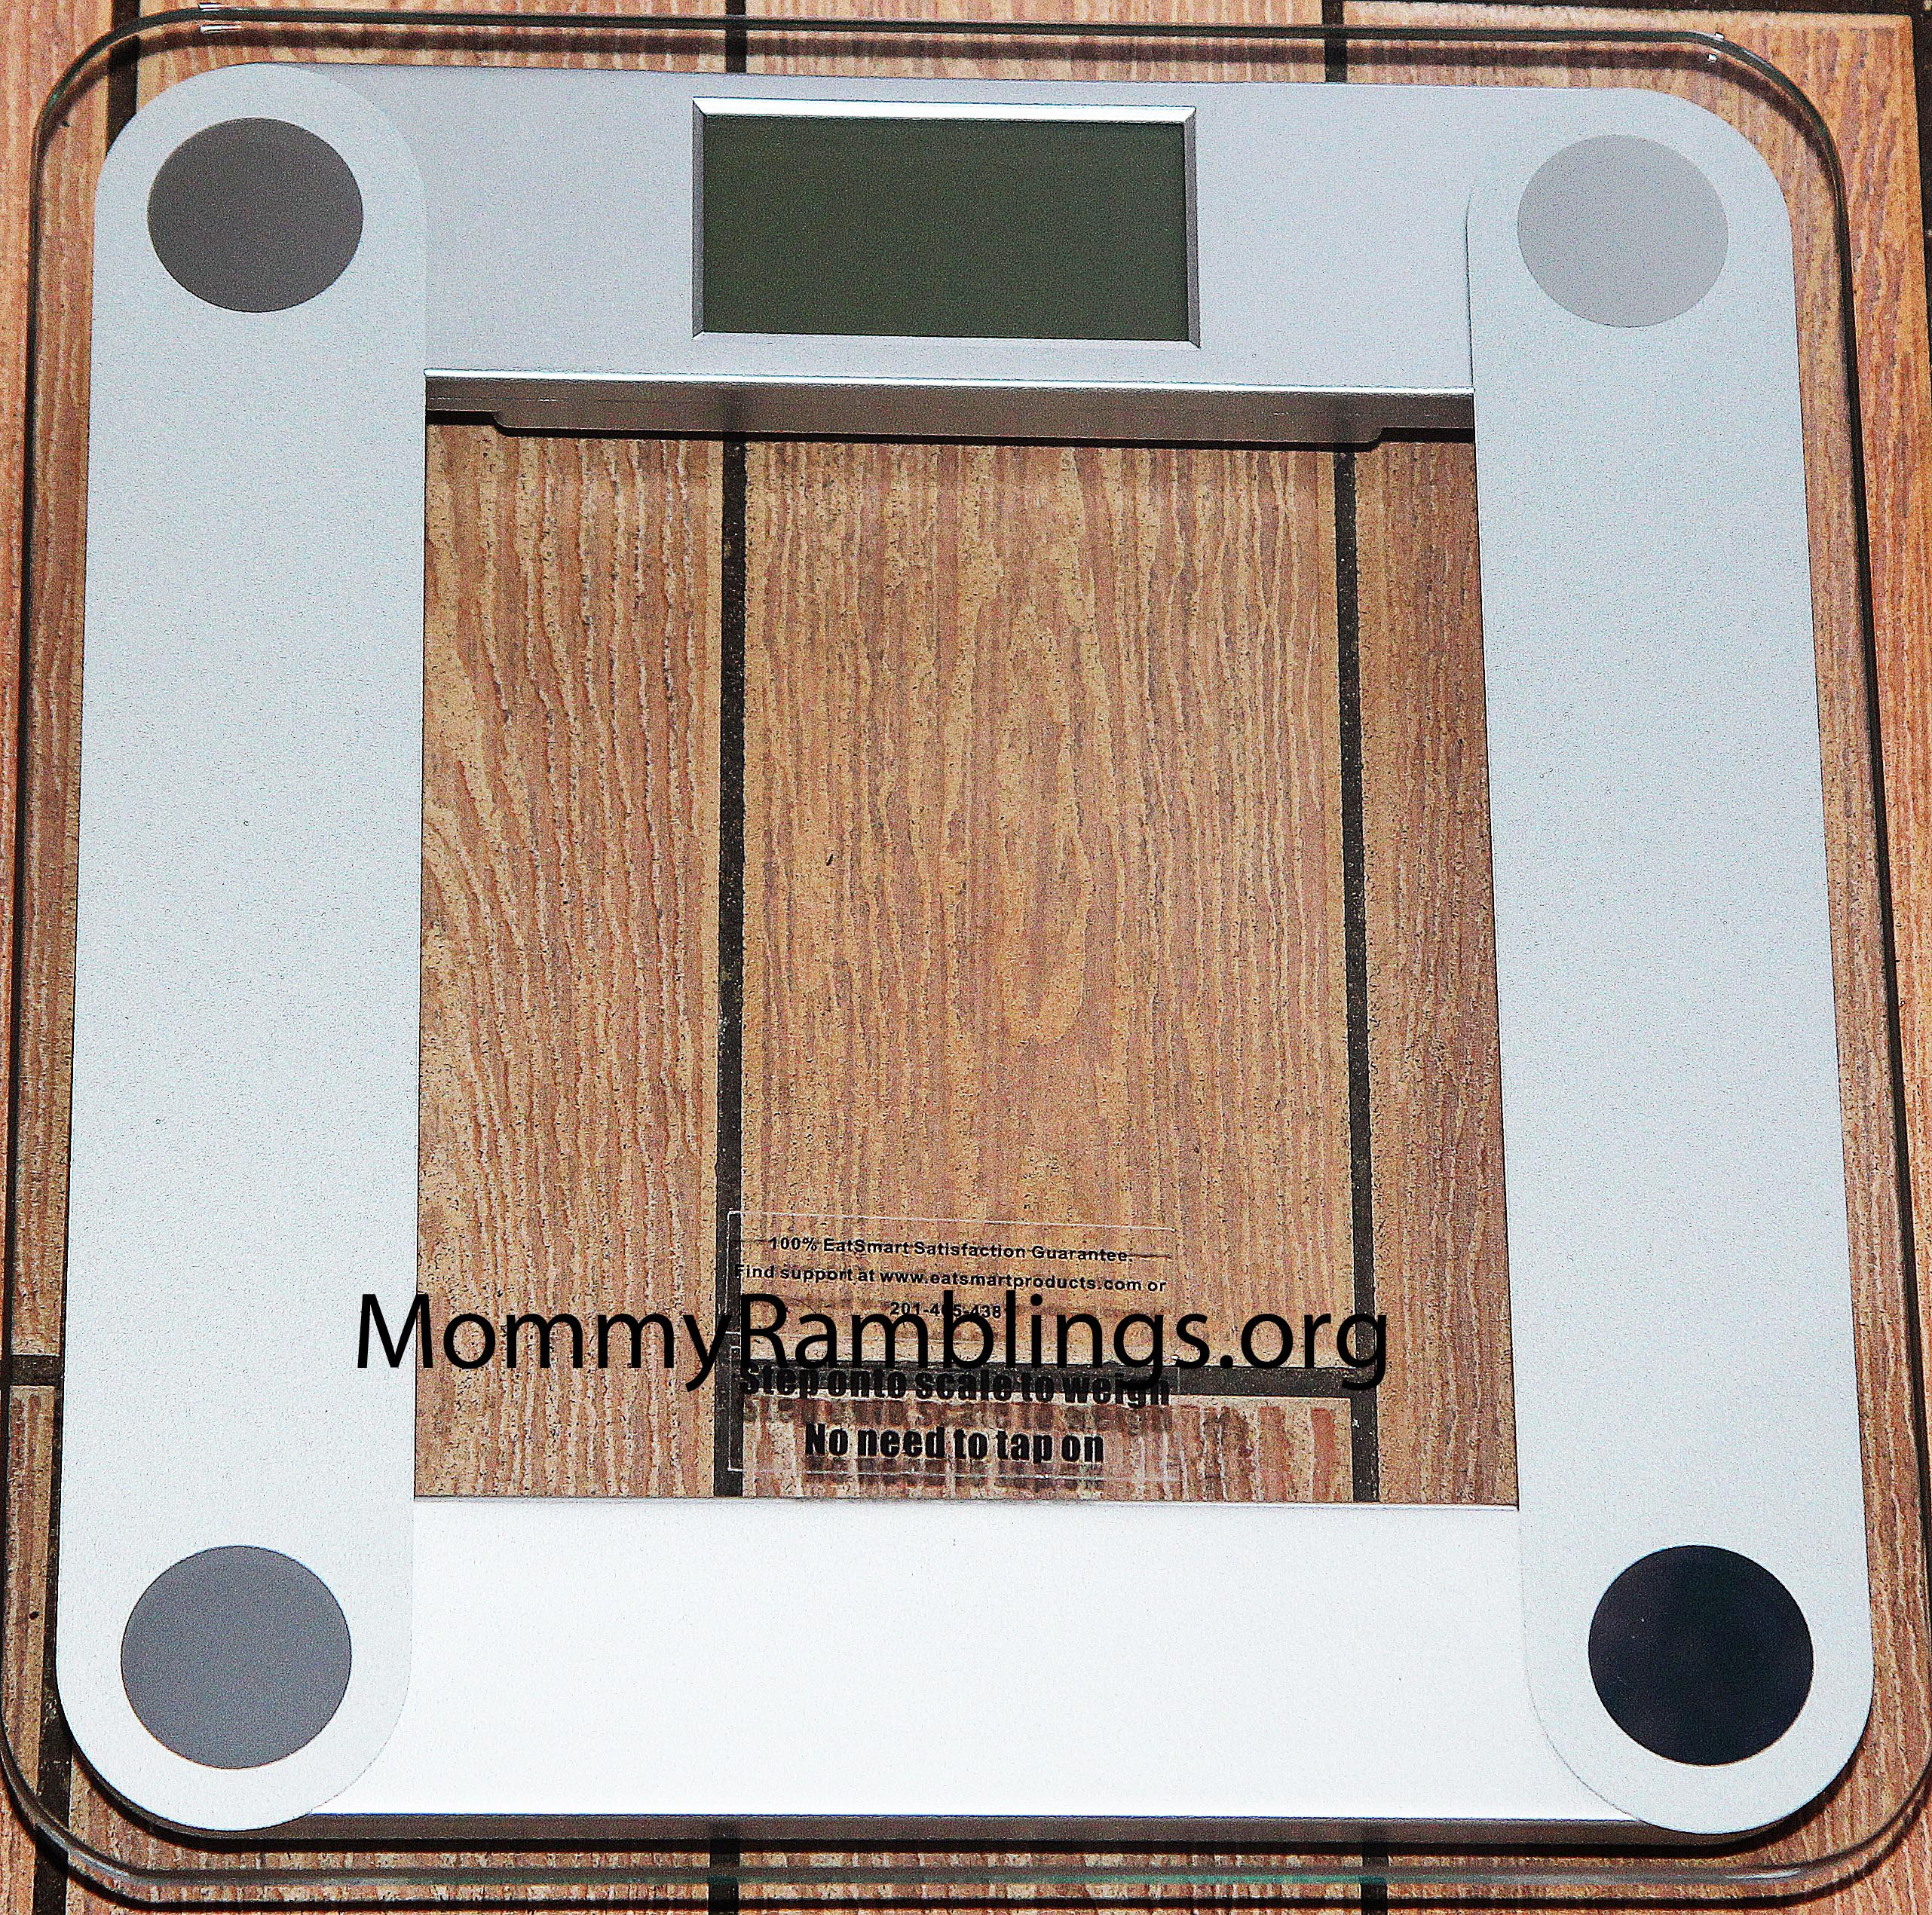 Bed bath and beyond bathroom scales - Eatsmart Precision Digital Bathroom Scale Eatsmart Precision Eatsmart Precision Digital Bathroom Scale Calibration